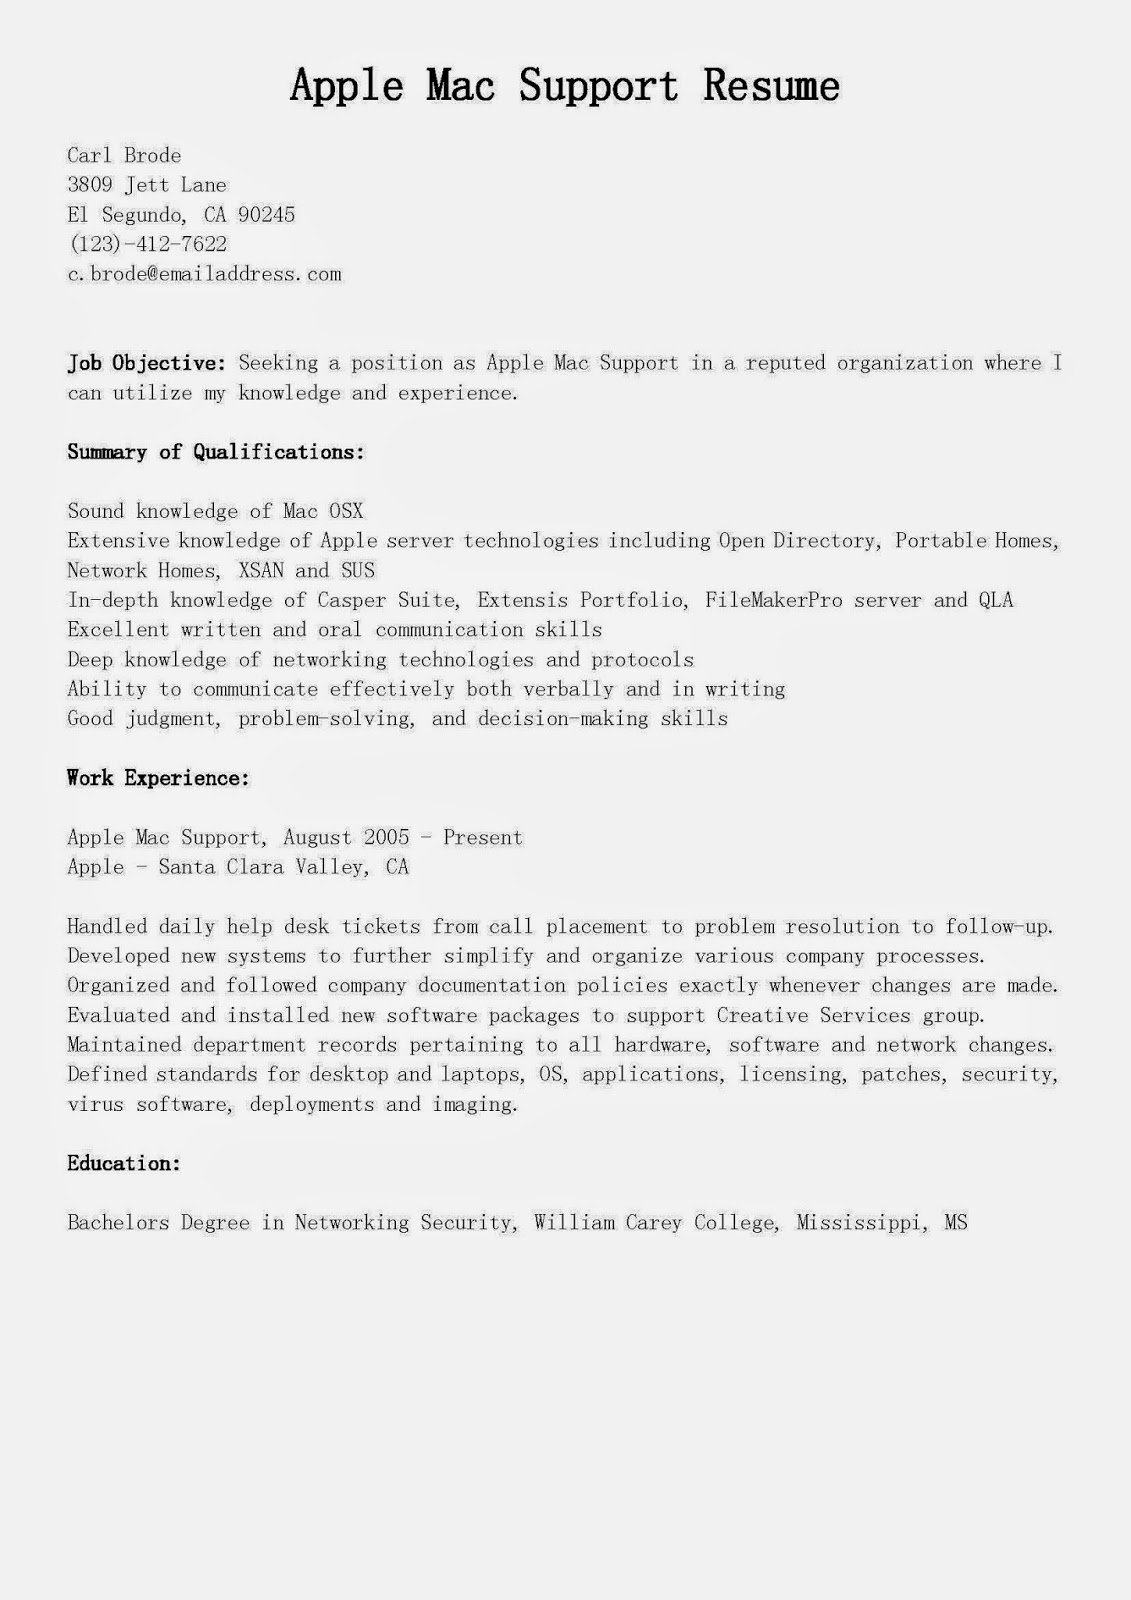 Resume Template for Mac New Resume Samples Apple Mac Support Resume Sample